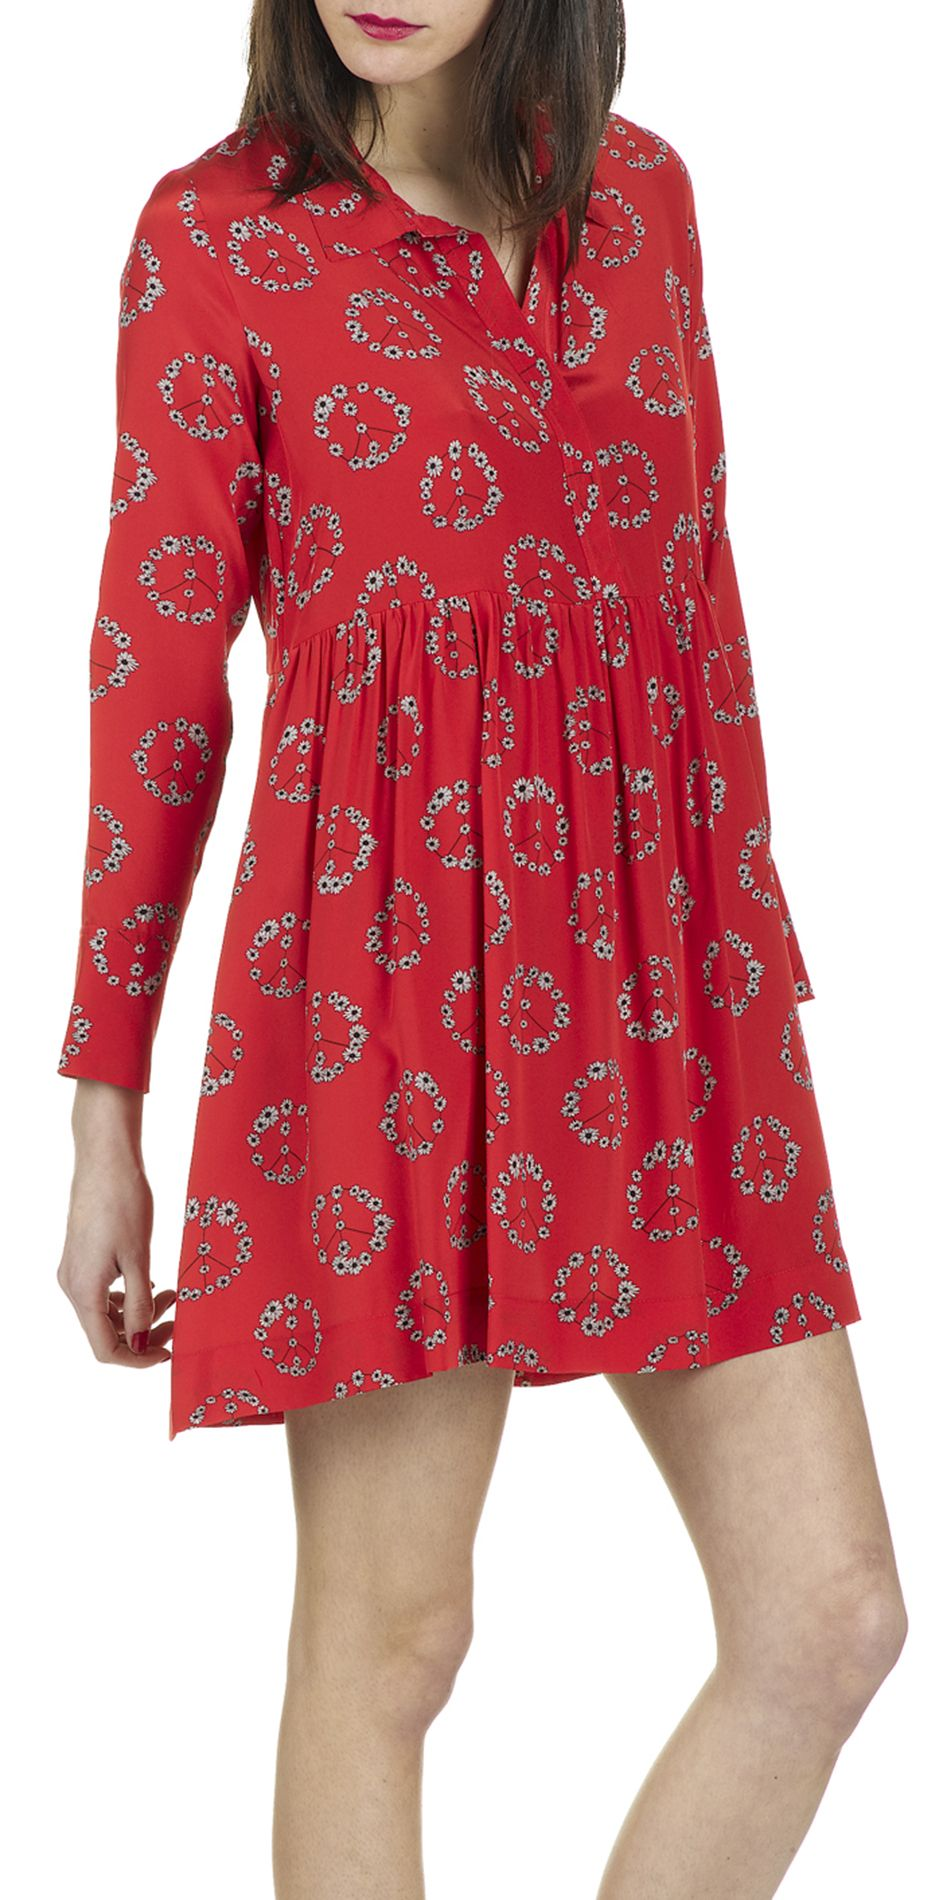 e shop robe imprimee ring en soie rouge sandro pour femme With place des tendances robes